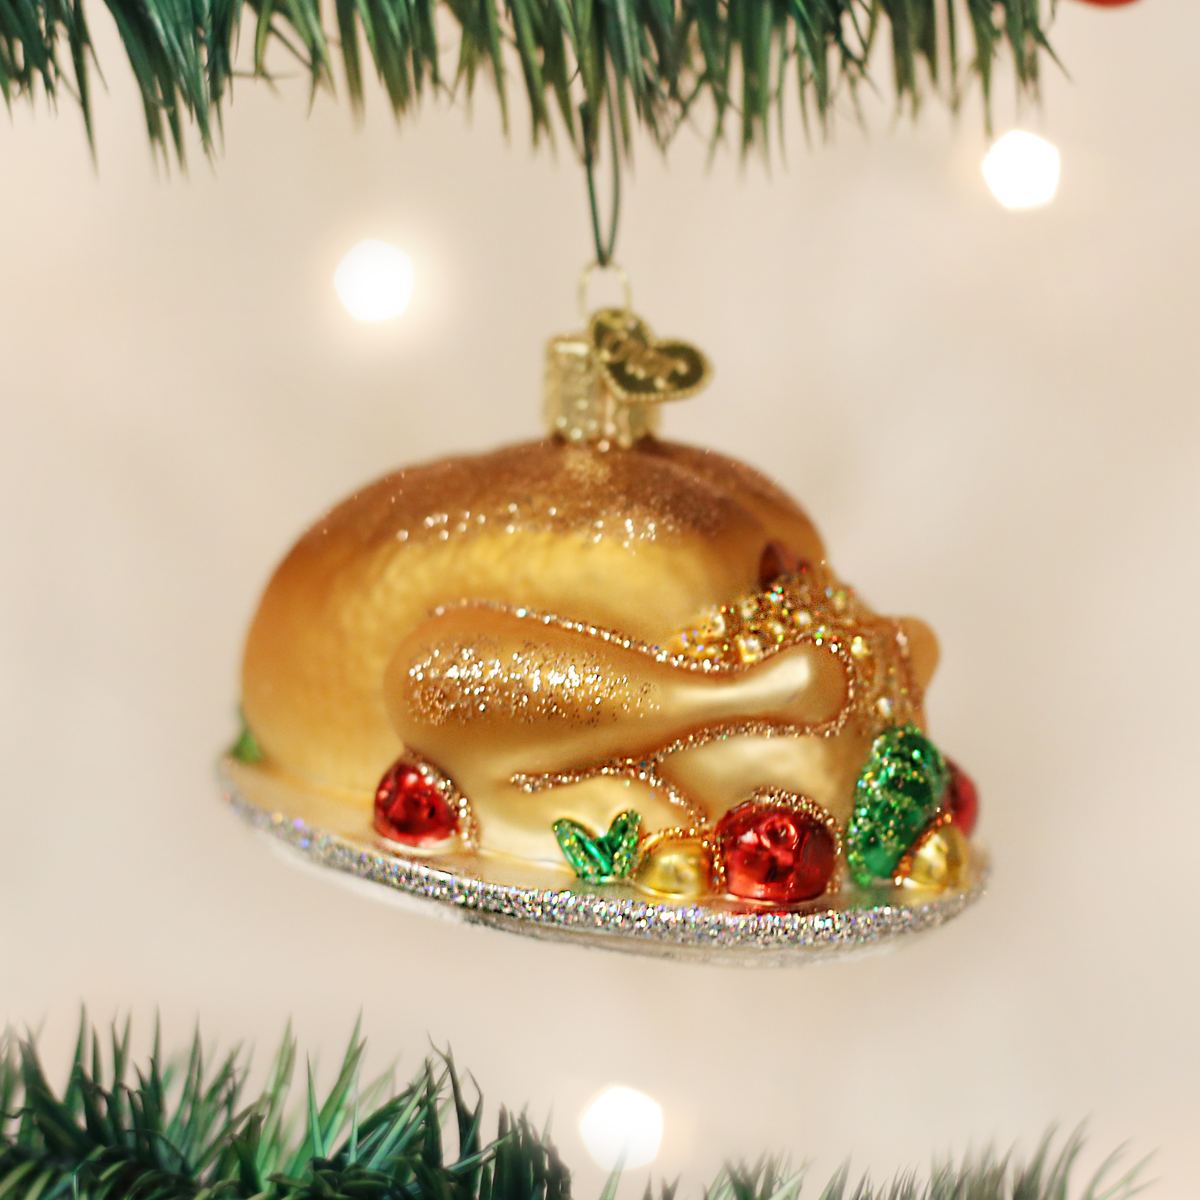 Turkey Platter Ornament